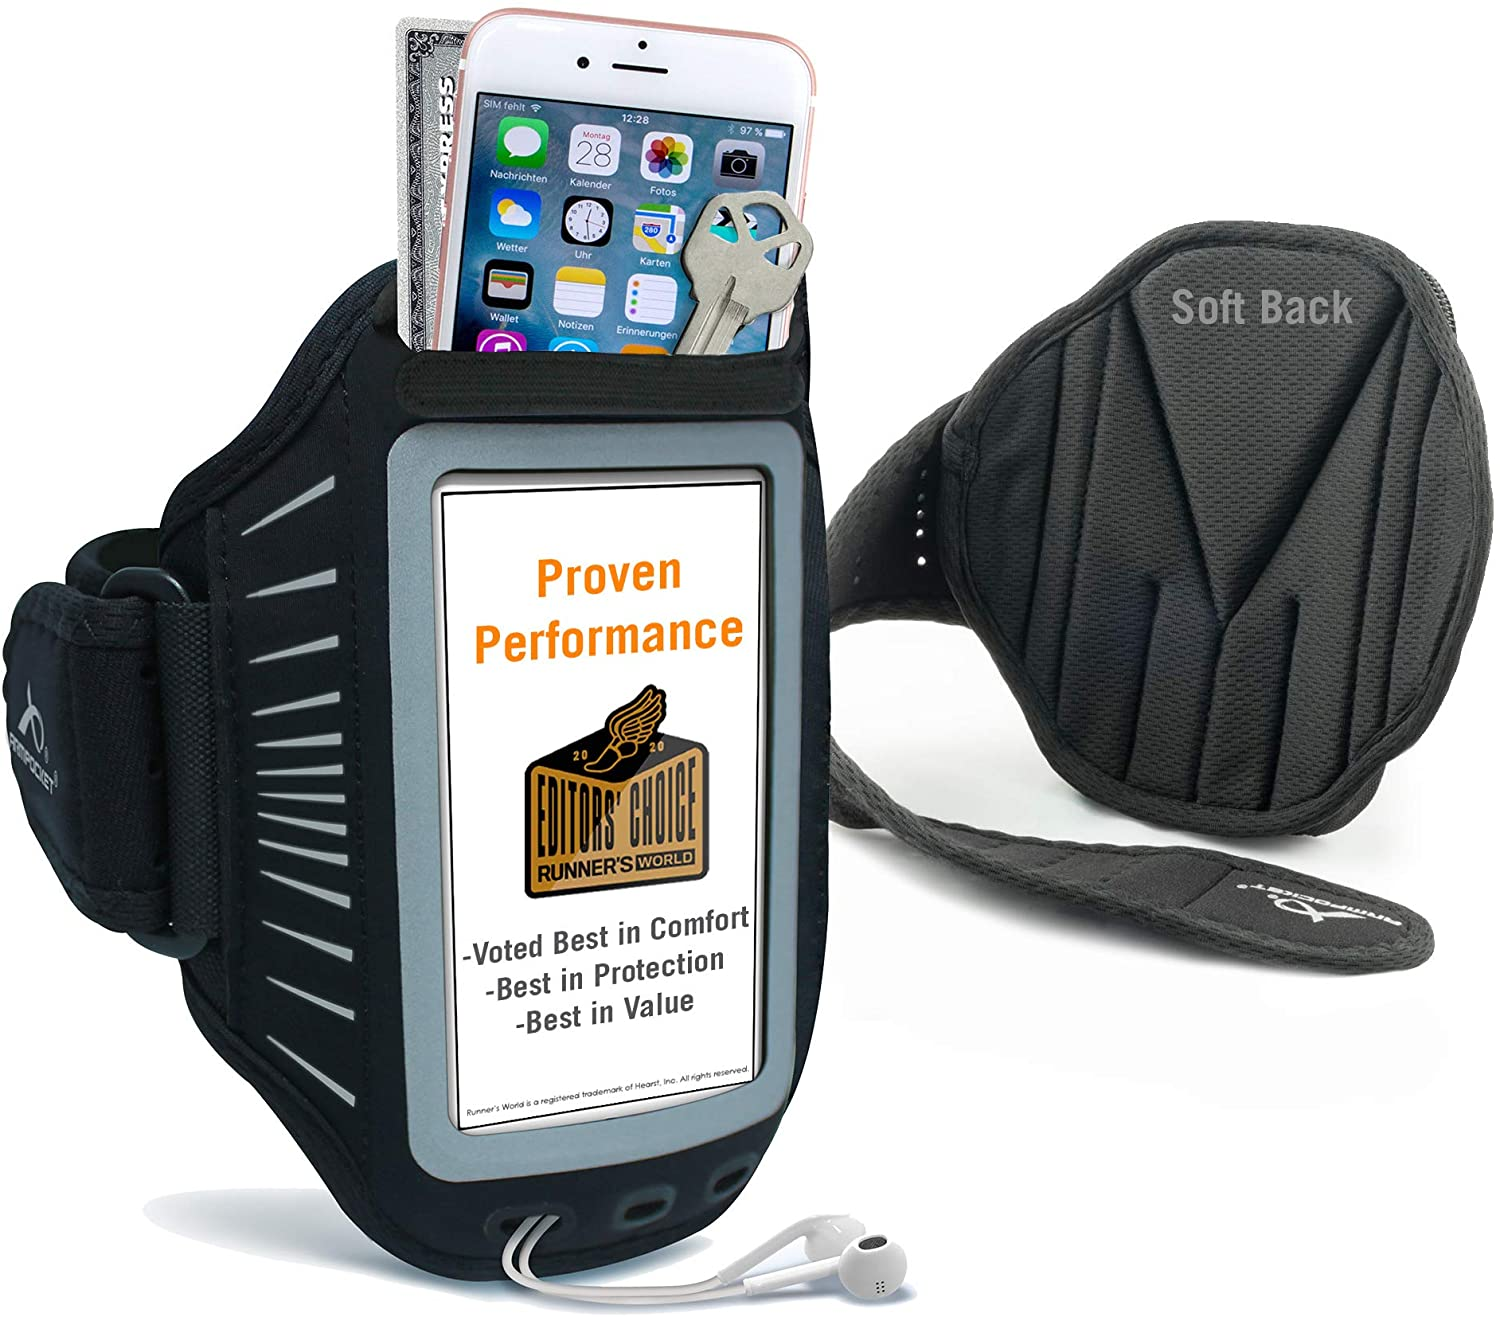 Phone Armbands for Running | Armpocket Racer Plus Ultra Thin Phone Armband | iPhone 8 Plus, 7 Plus, 6 Plus, Galaxy S7 Edge, Pixel 4a, Phones Without Cases up to 6.3 Inches | Black Large Strap